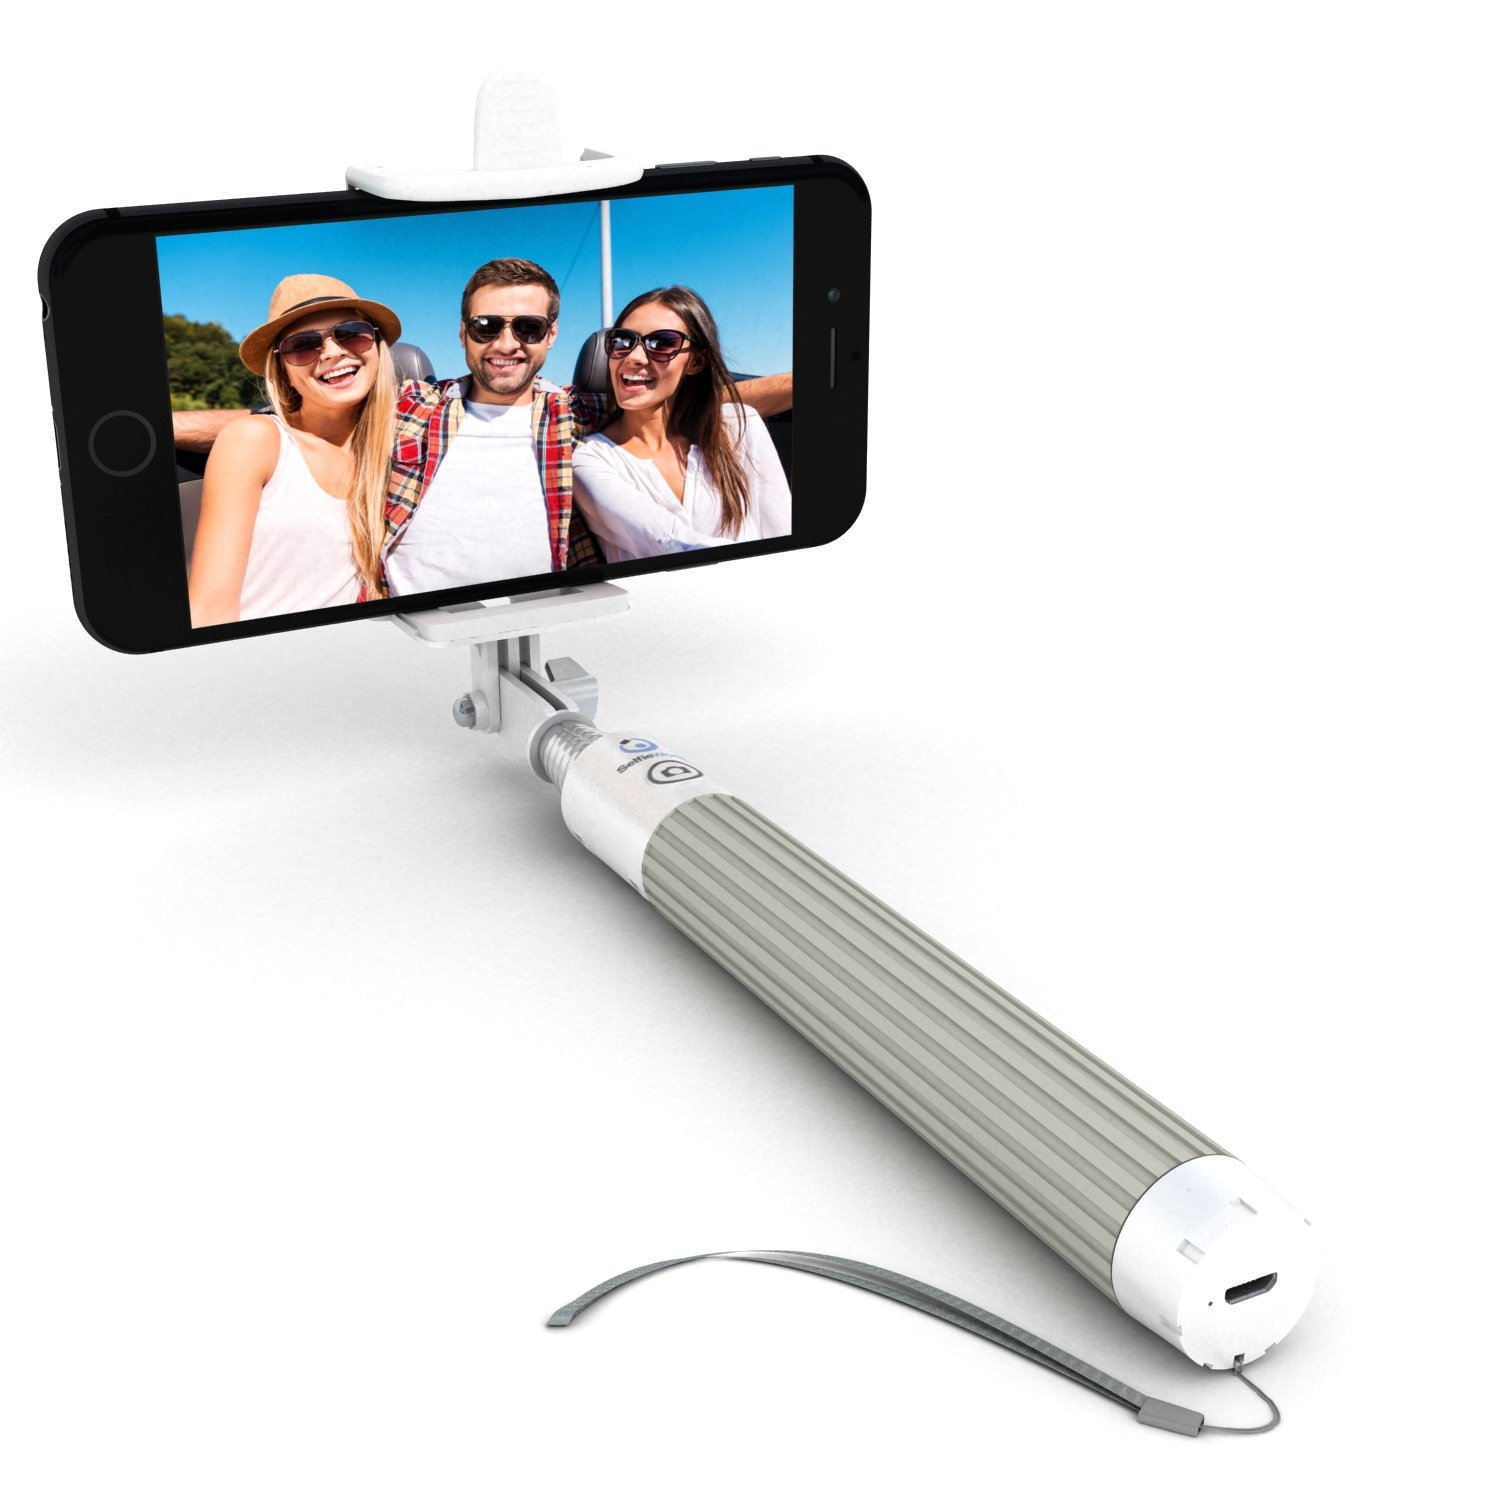 7cc0d371150 Premium 5-In-1 Bluetooth Selfie Stick For iPhone X XR XS 10 8 7 6 5,  Samsung Galaxy S10 S9 S8 S7 S6 S5, Android - Selfie Sticks (Powered by USA  Technology) ...